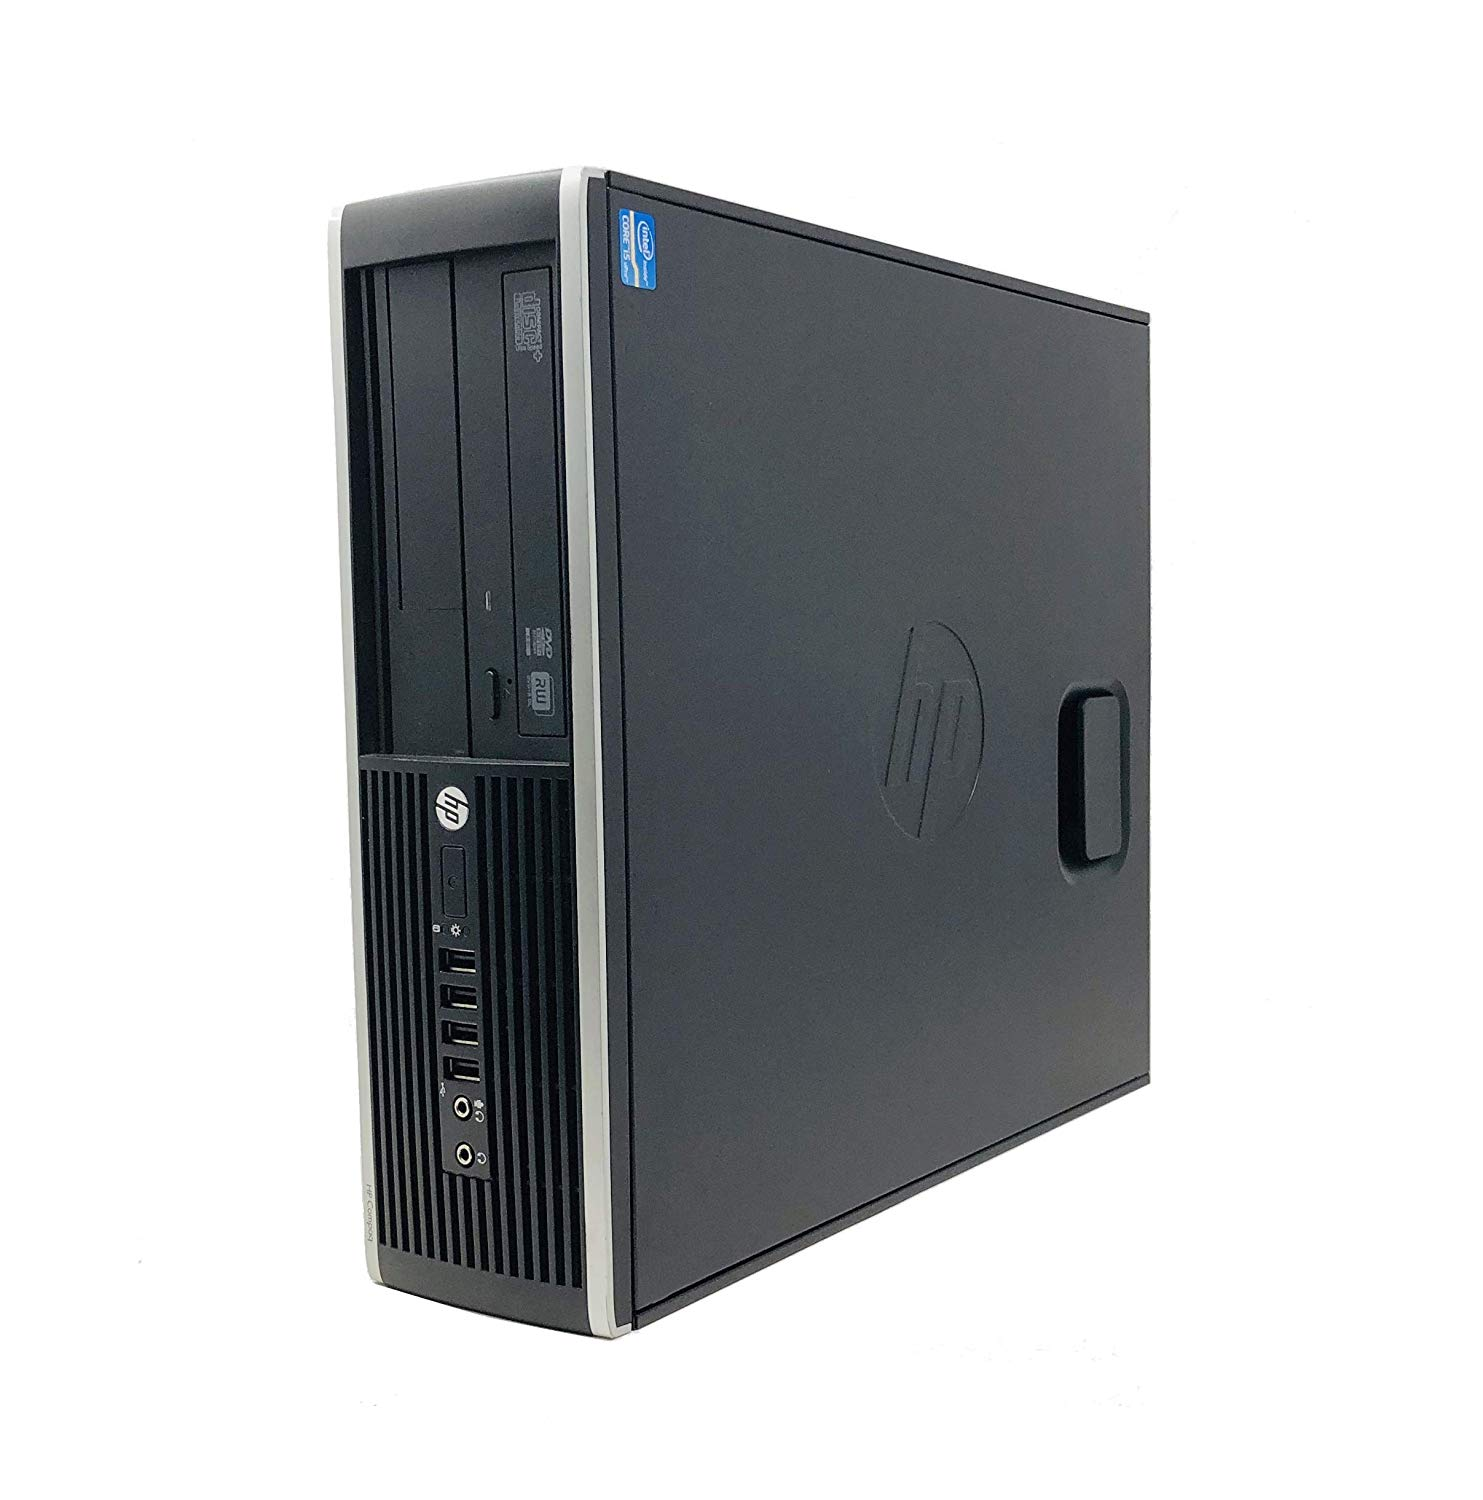 Hp Elite 8200 - Ordenador de sobremesa (<font><b>Intel</b></font> <font><b>i5</b></font>-<font><b>2400</b></font>,Lector, 8GB de RAM, Disco SSD de 480GB , Windows 7 PRO ) - Negro (Reacondicionado) image